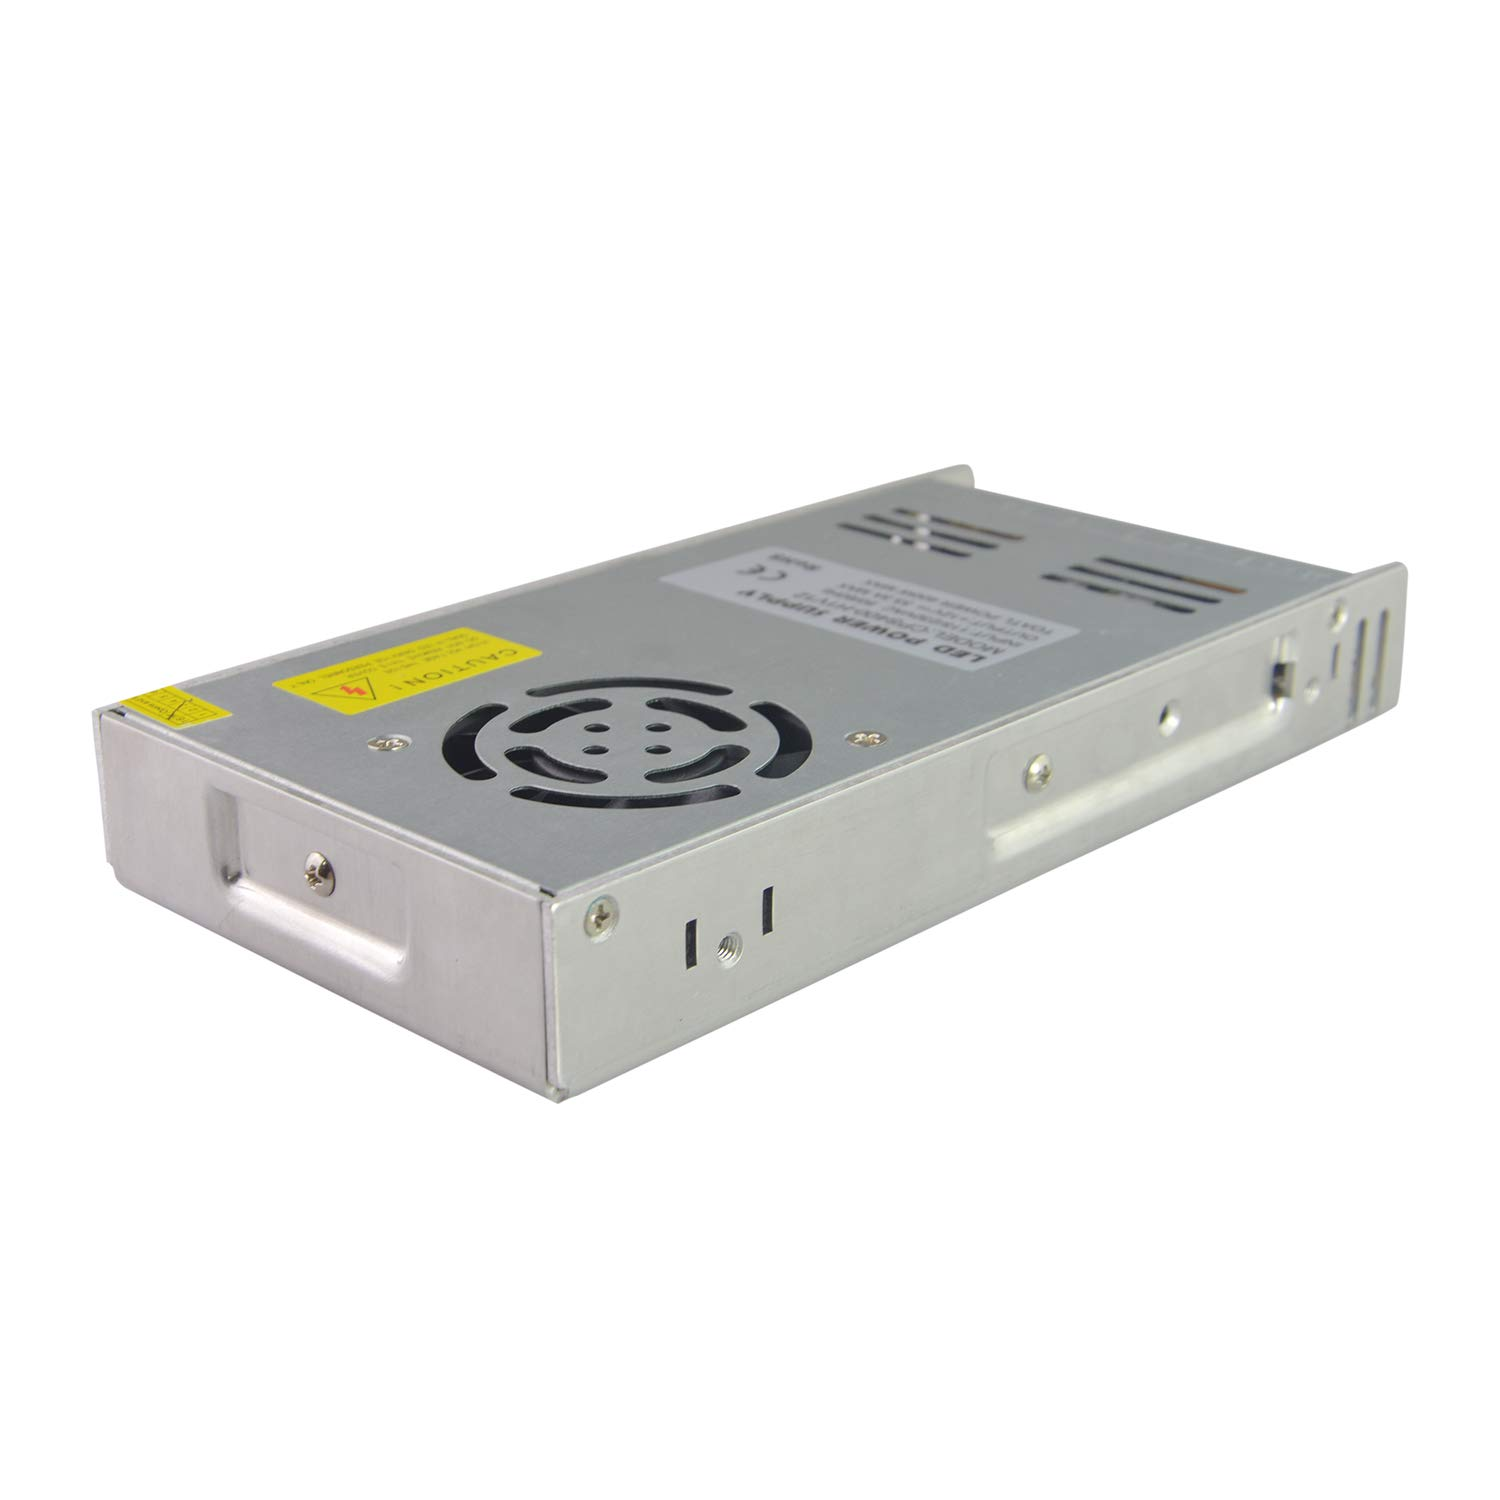 Dapenk Indoor Ultra Thin Aluminum Case With Mesh CPS Series 100W Led Power Supply Unit 12V PSU For LED Bulbs Strip Light CPS100-W1V12